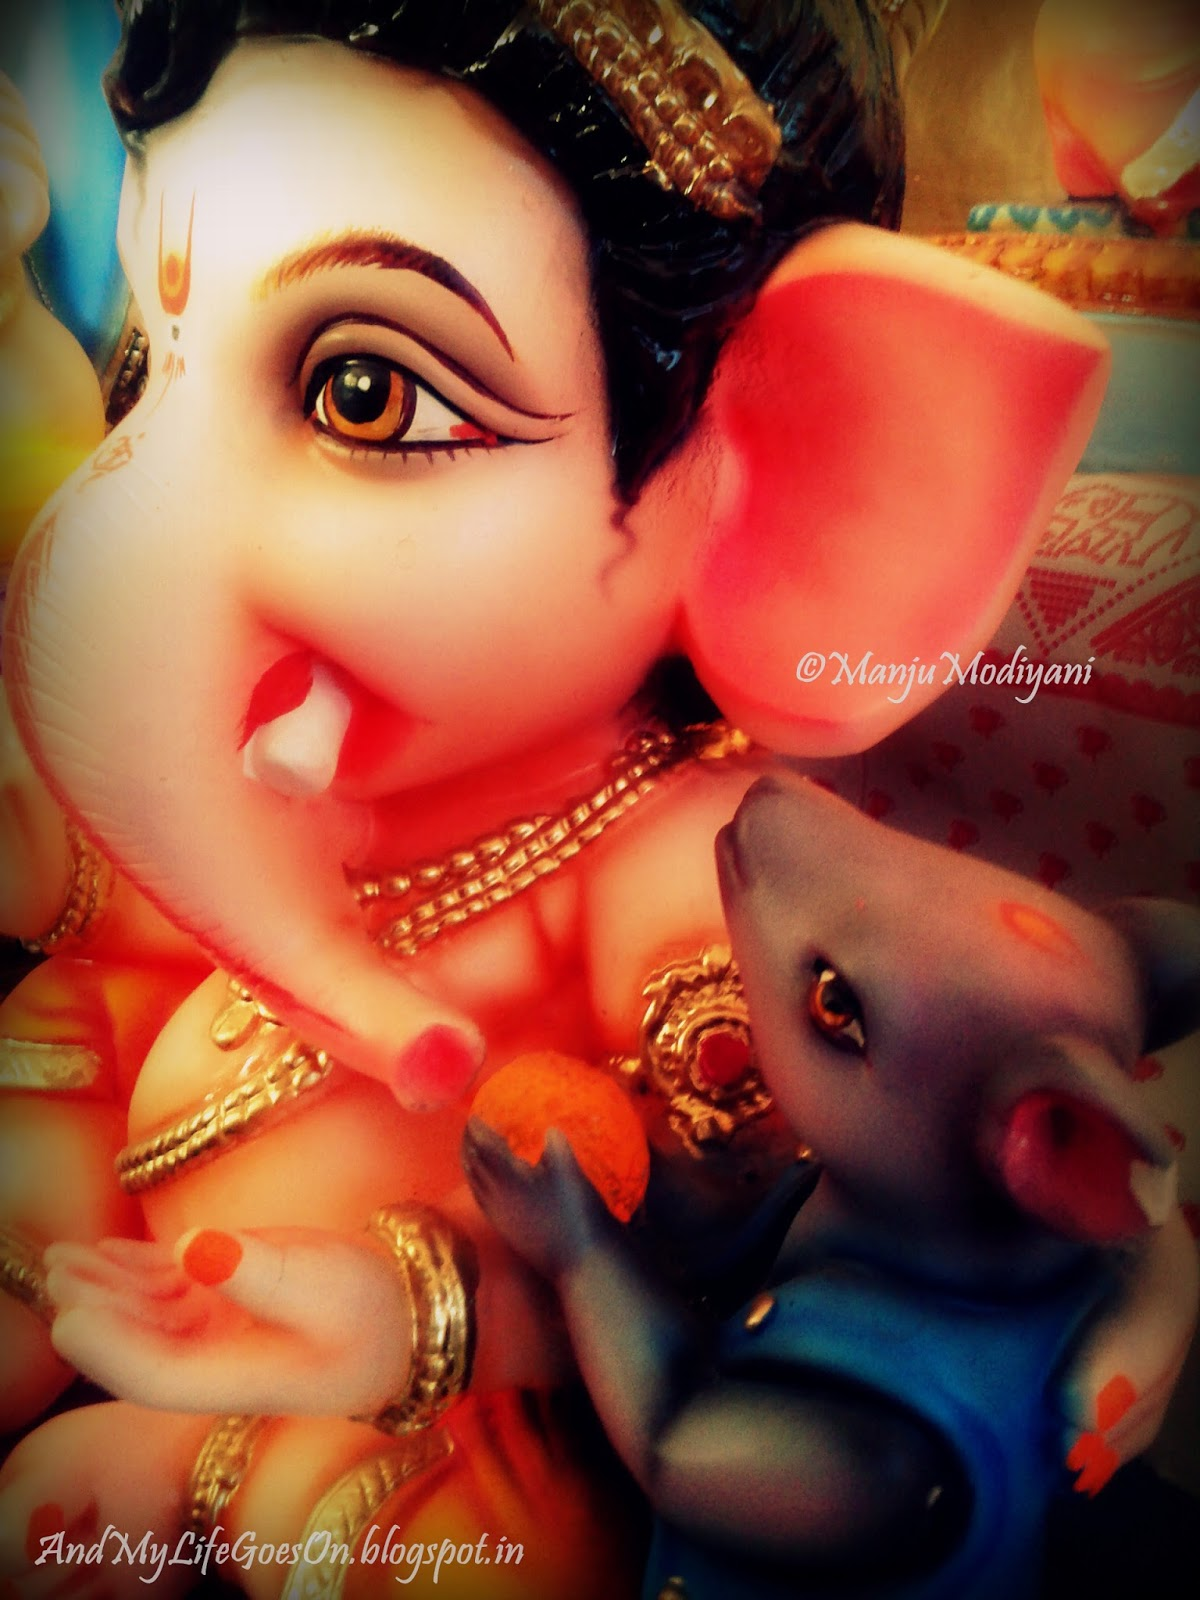 and my life goes on: welcoming lord ganesha!